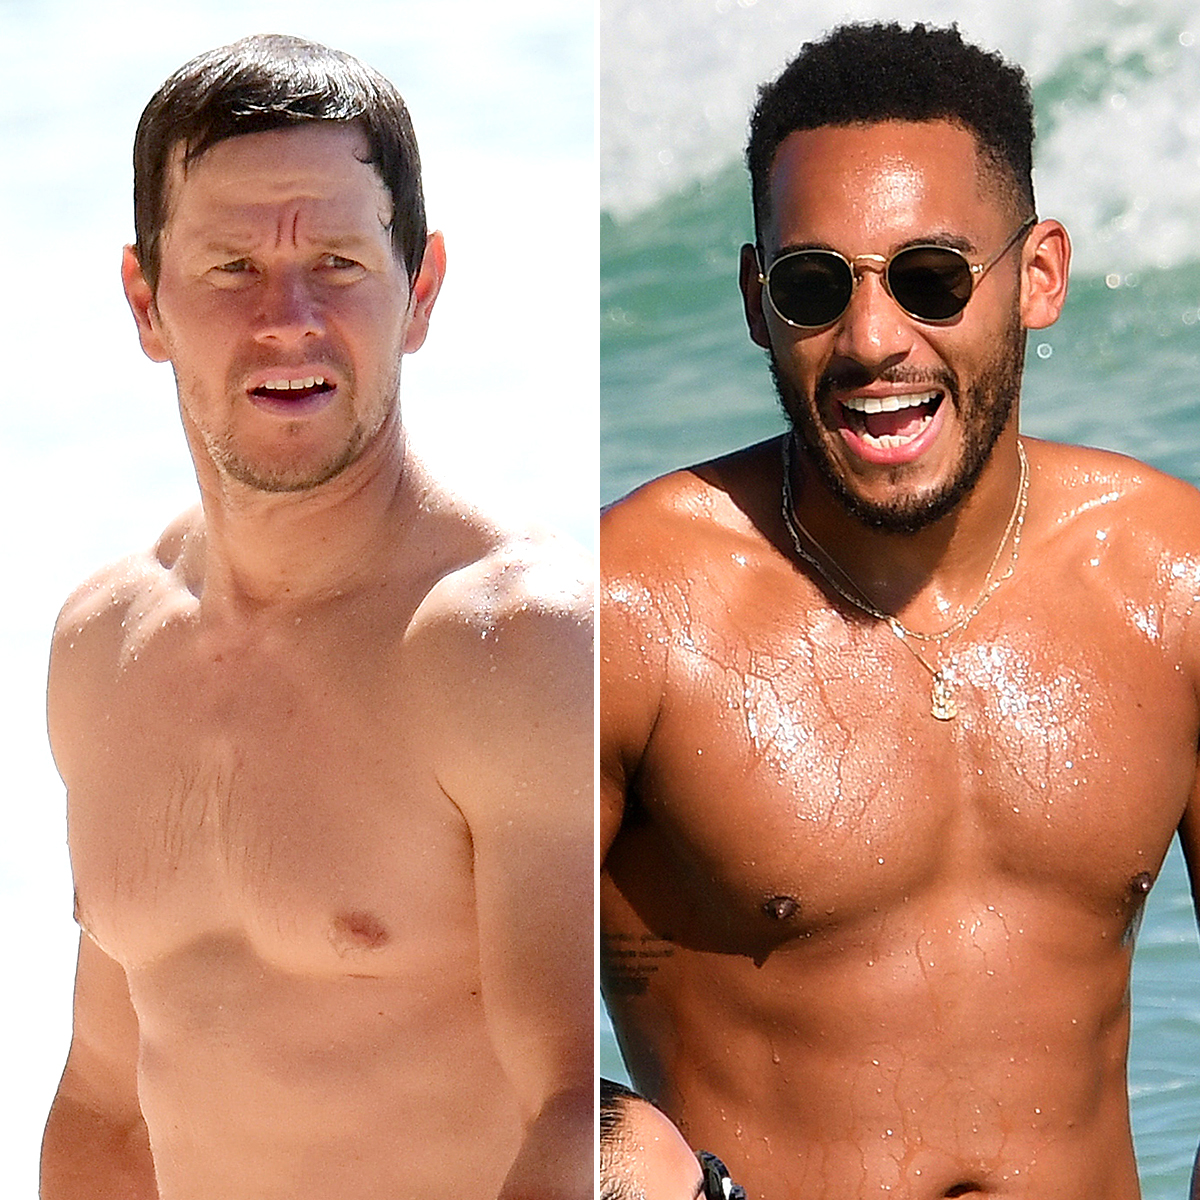 Mark-Wahlberg-Josh-Denzel-shirtless - There's nothing like a hot dude on the beach to remind Us of how hard famous actors, athletes, TV hosts, reality stars and other Hollywood men work on their physiques. Whether you're into pecs, six-packs , strong legs, muscular arms or a good set of obliques on your hunks, there's a whole slew of in-shape, shirtless celebrities — including Mark Wahlberg , Victor Cruz and Jared Leto — parading their hard-won beach bodies atop yachts, by the pool and on the sand.